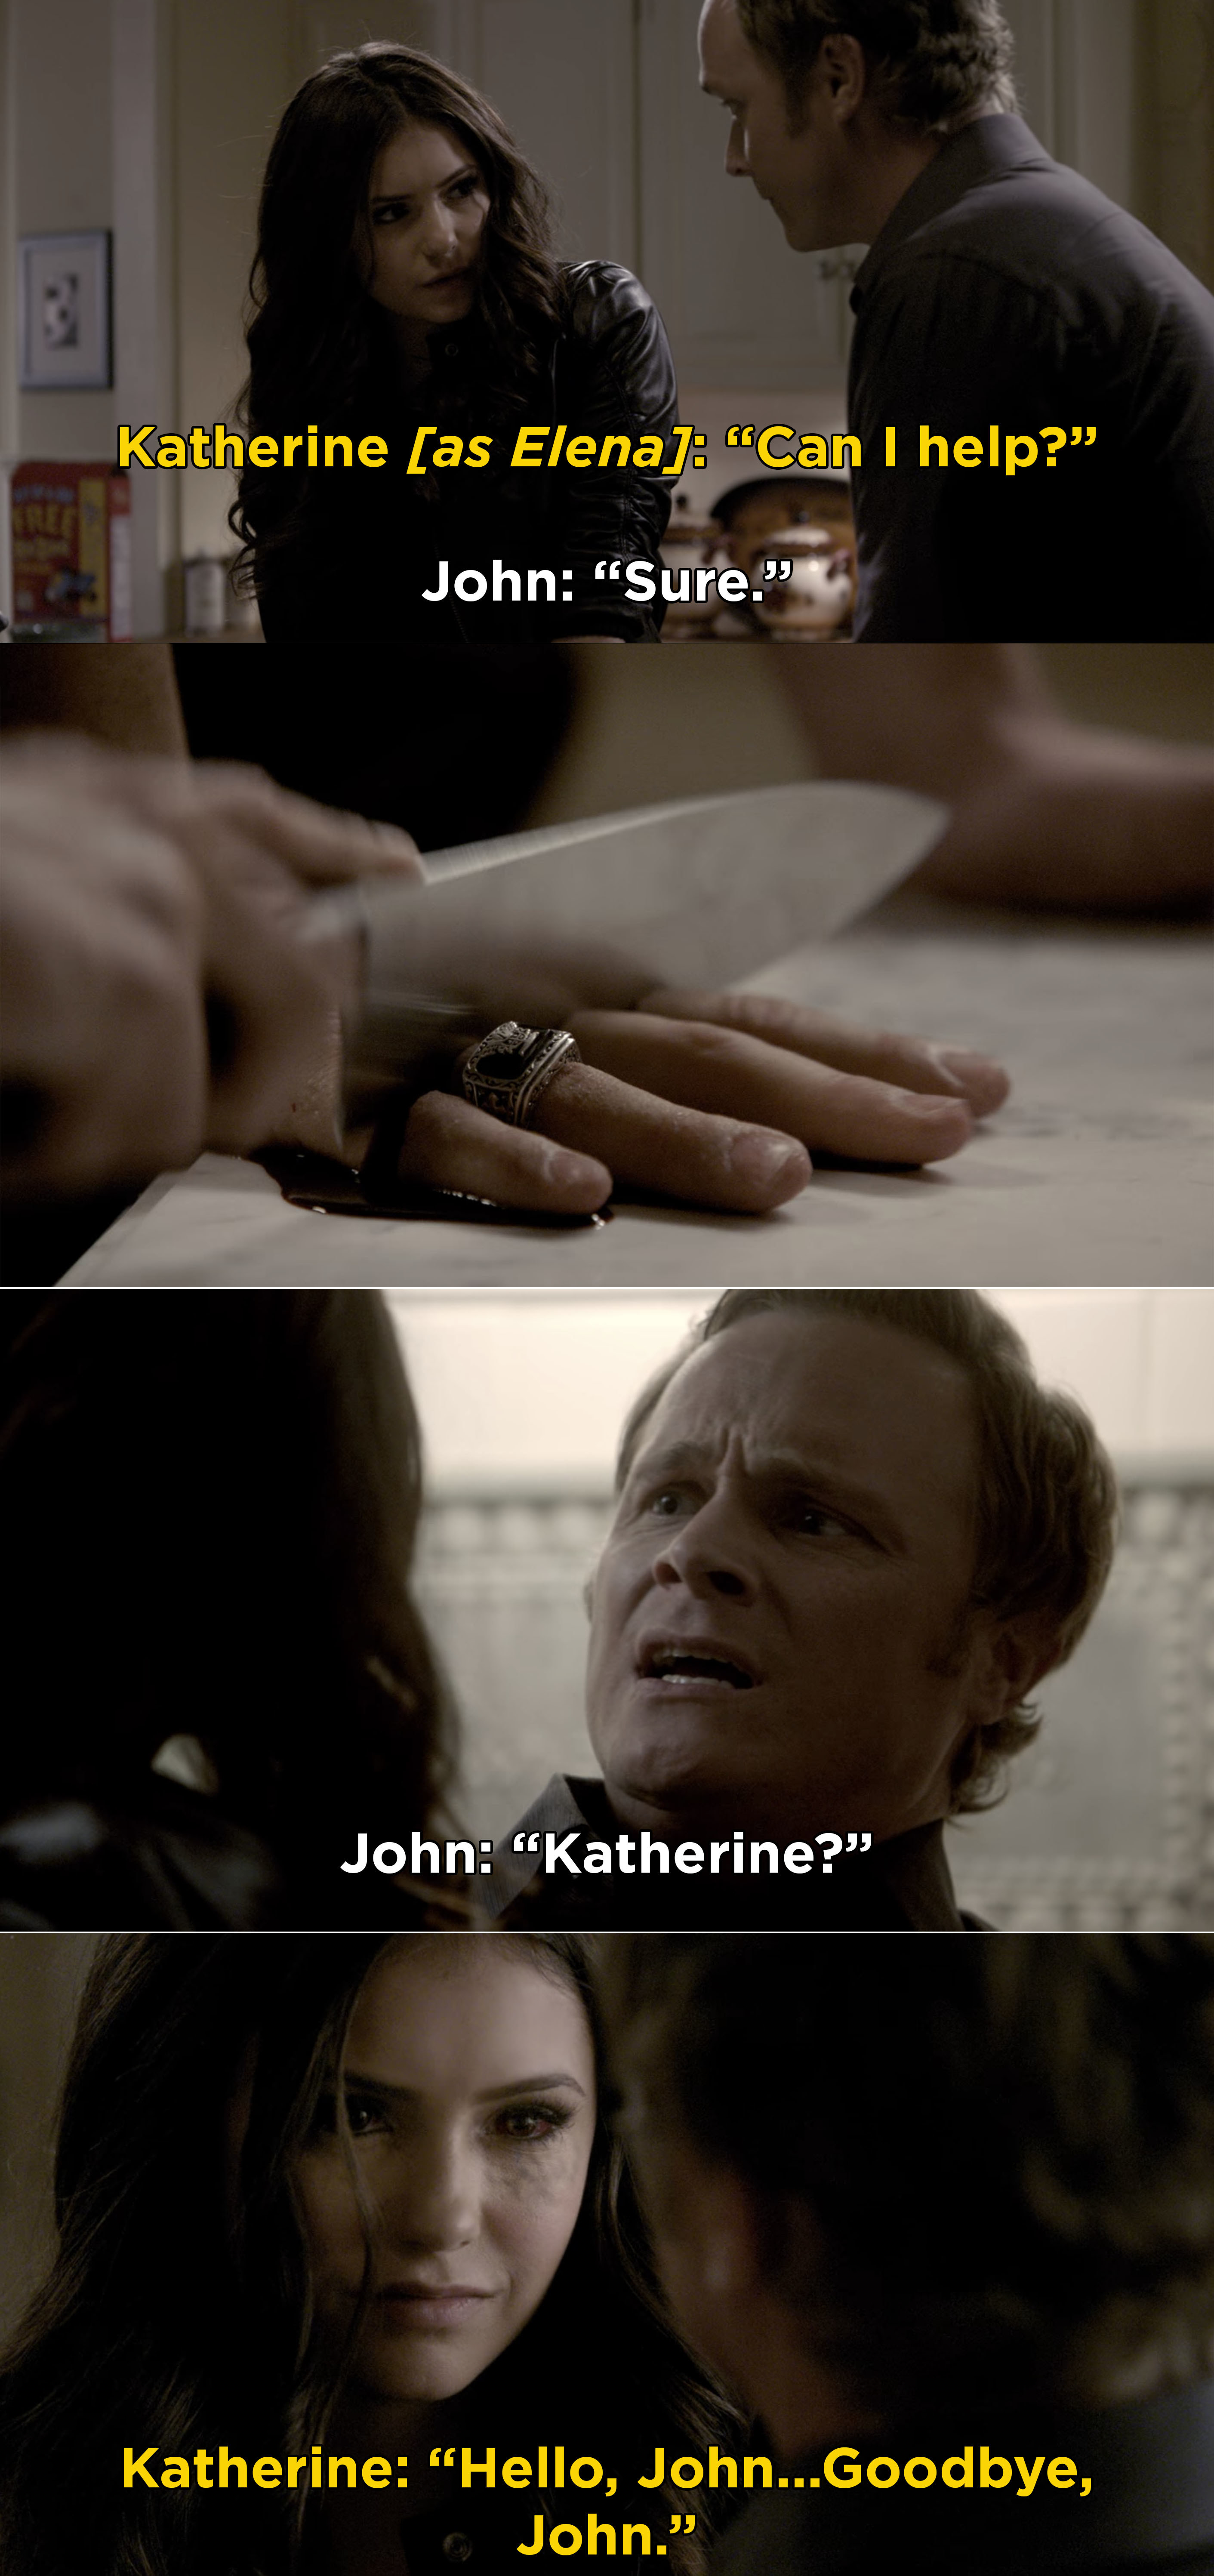 Katherine revealing herself to John and cutting off his fingers